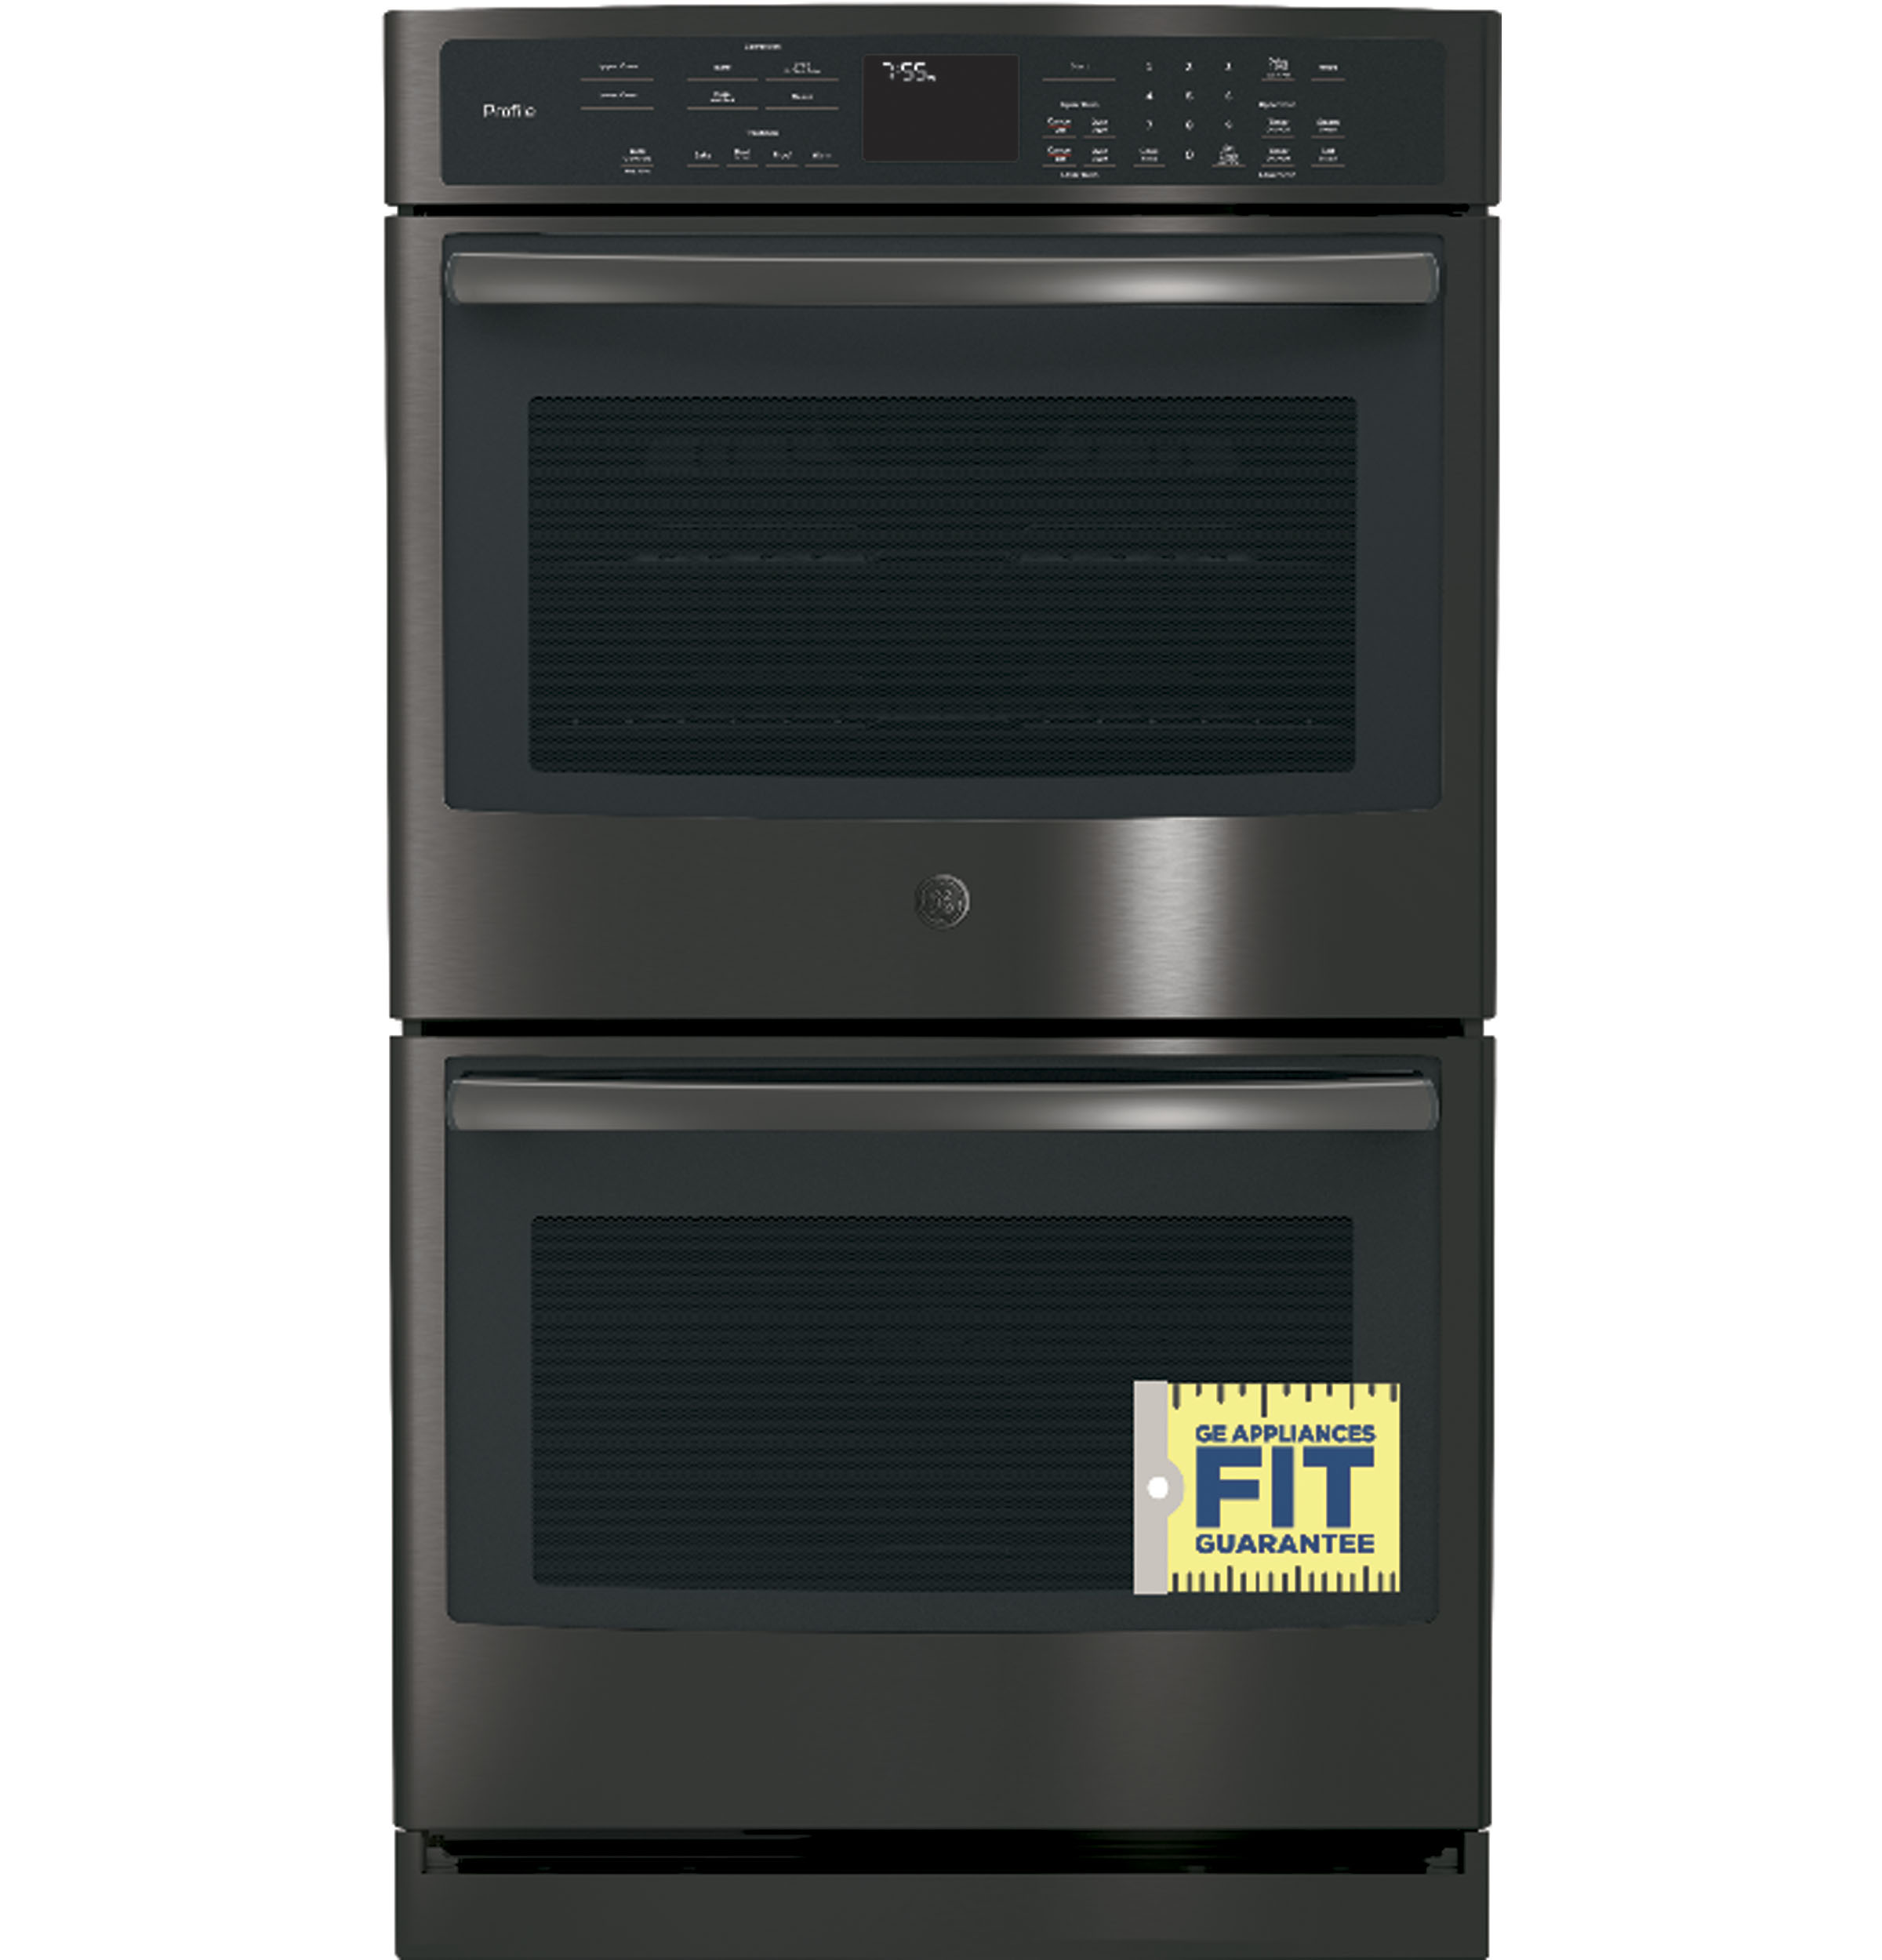 "Model: PT7550BLTS | GE Profile GE Profile™ Series 30"" Built-In Double Convection Wall Oven"